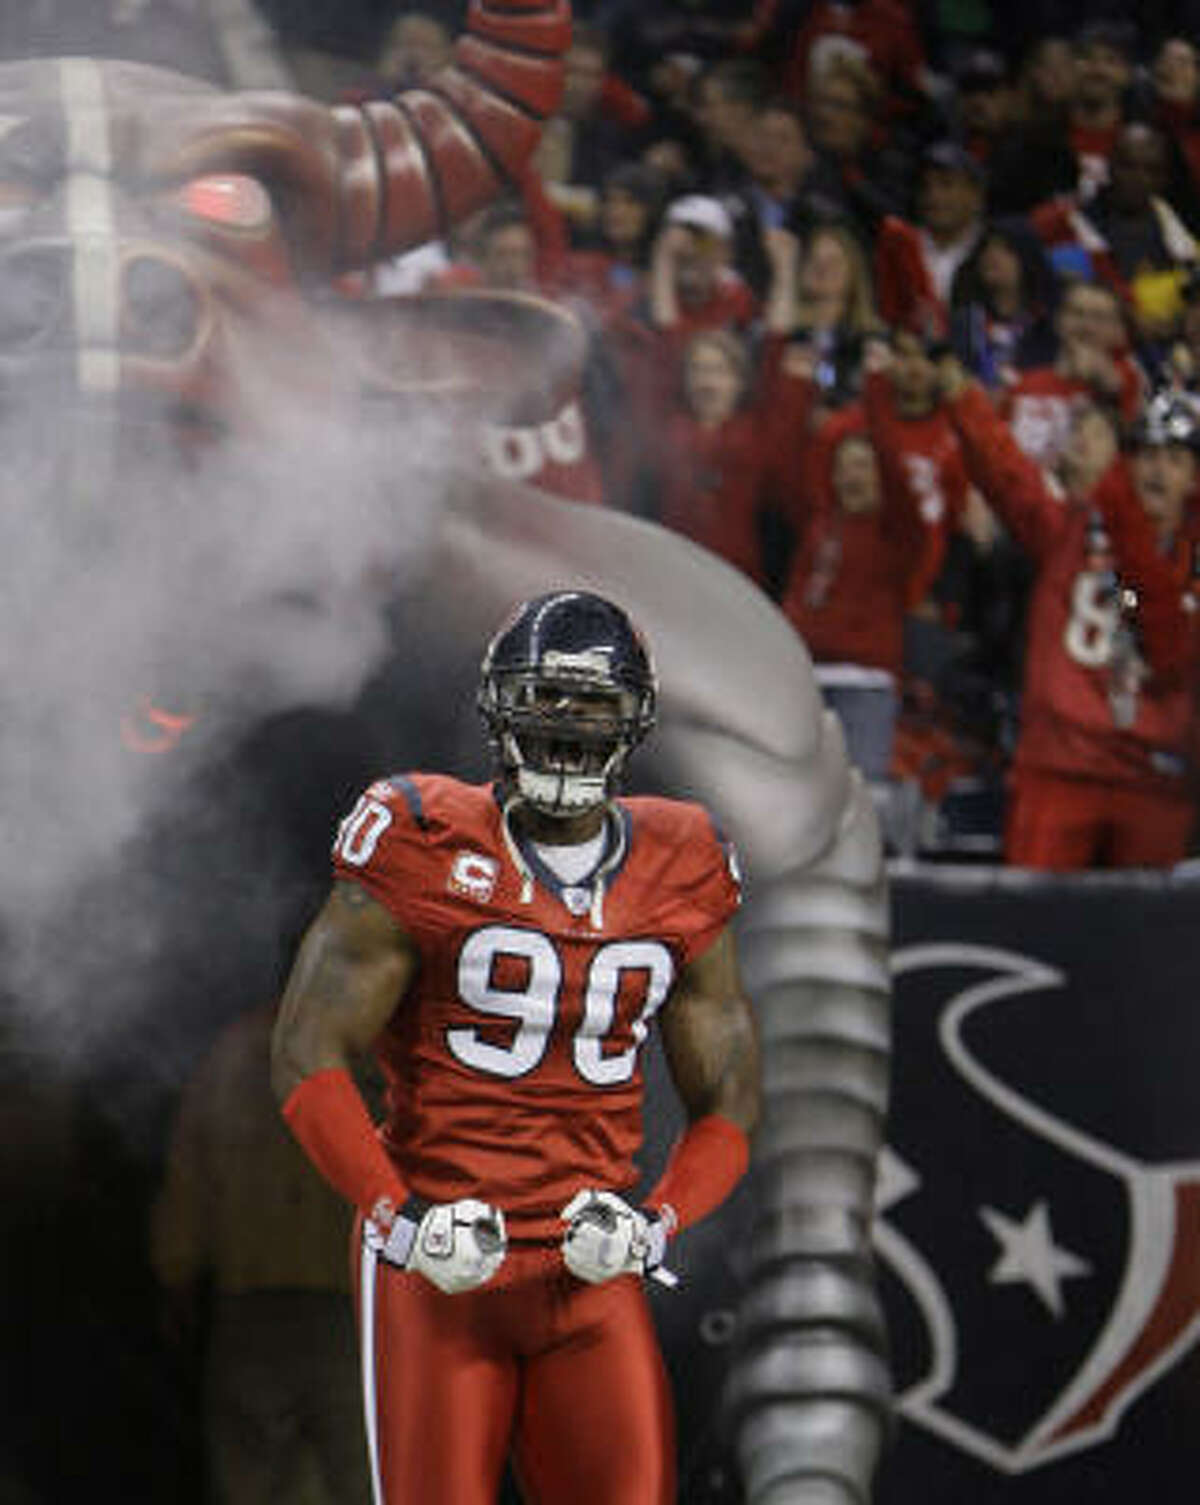 Texans defensive end Mario Williams takes the field before the Texans face the Jacksonville Jaguars at Reliant Stadium.